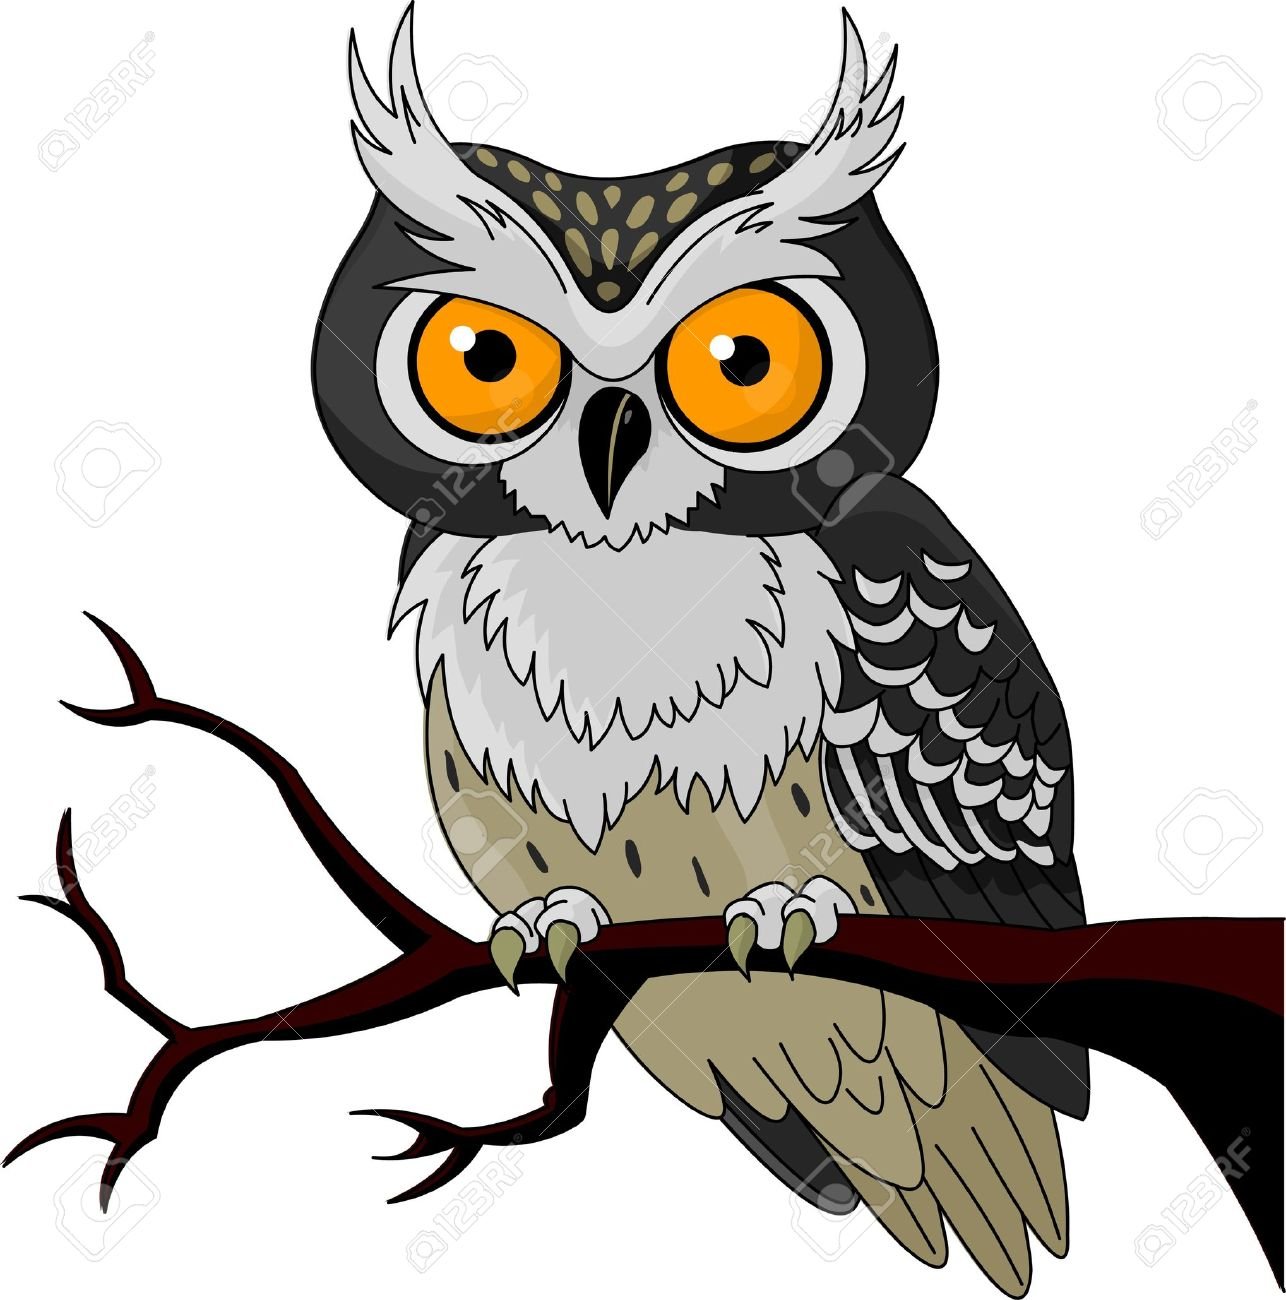 owl sitting upon a tree branch royalty free cliparts vectors and